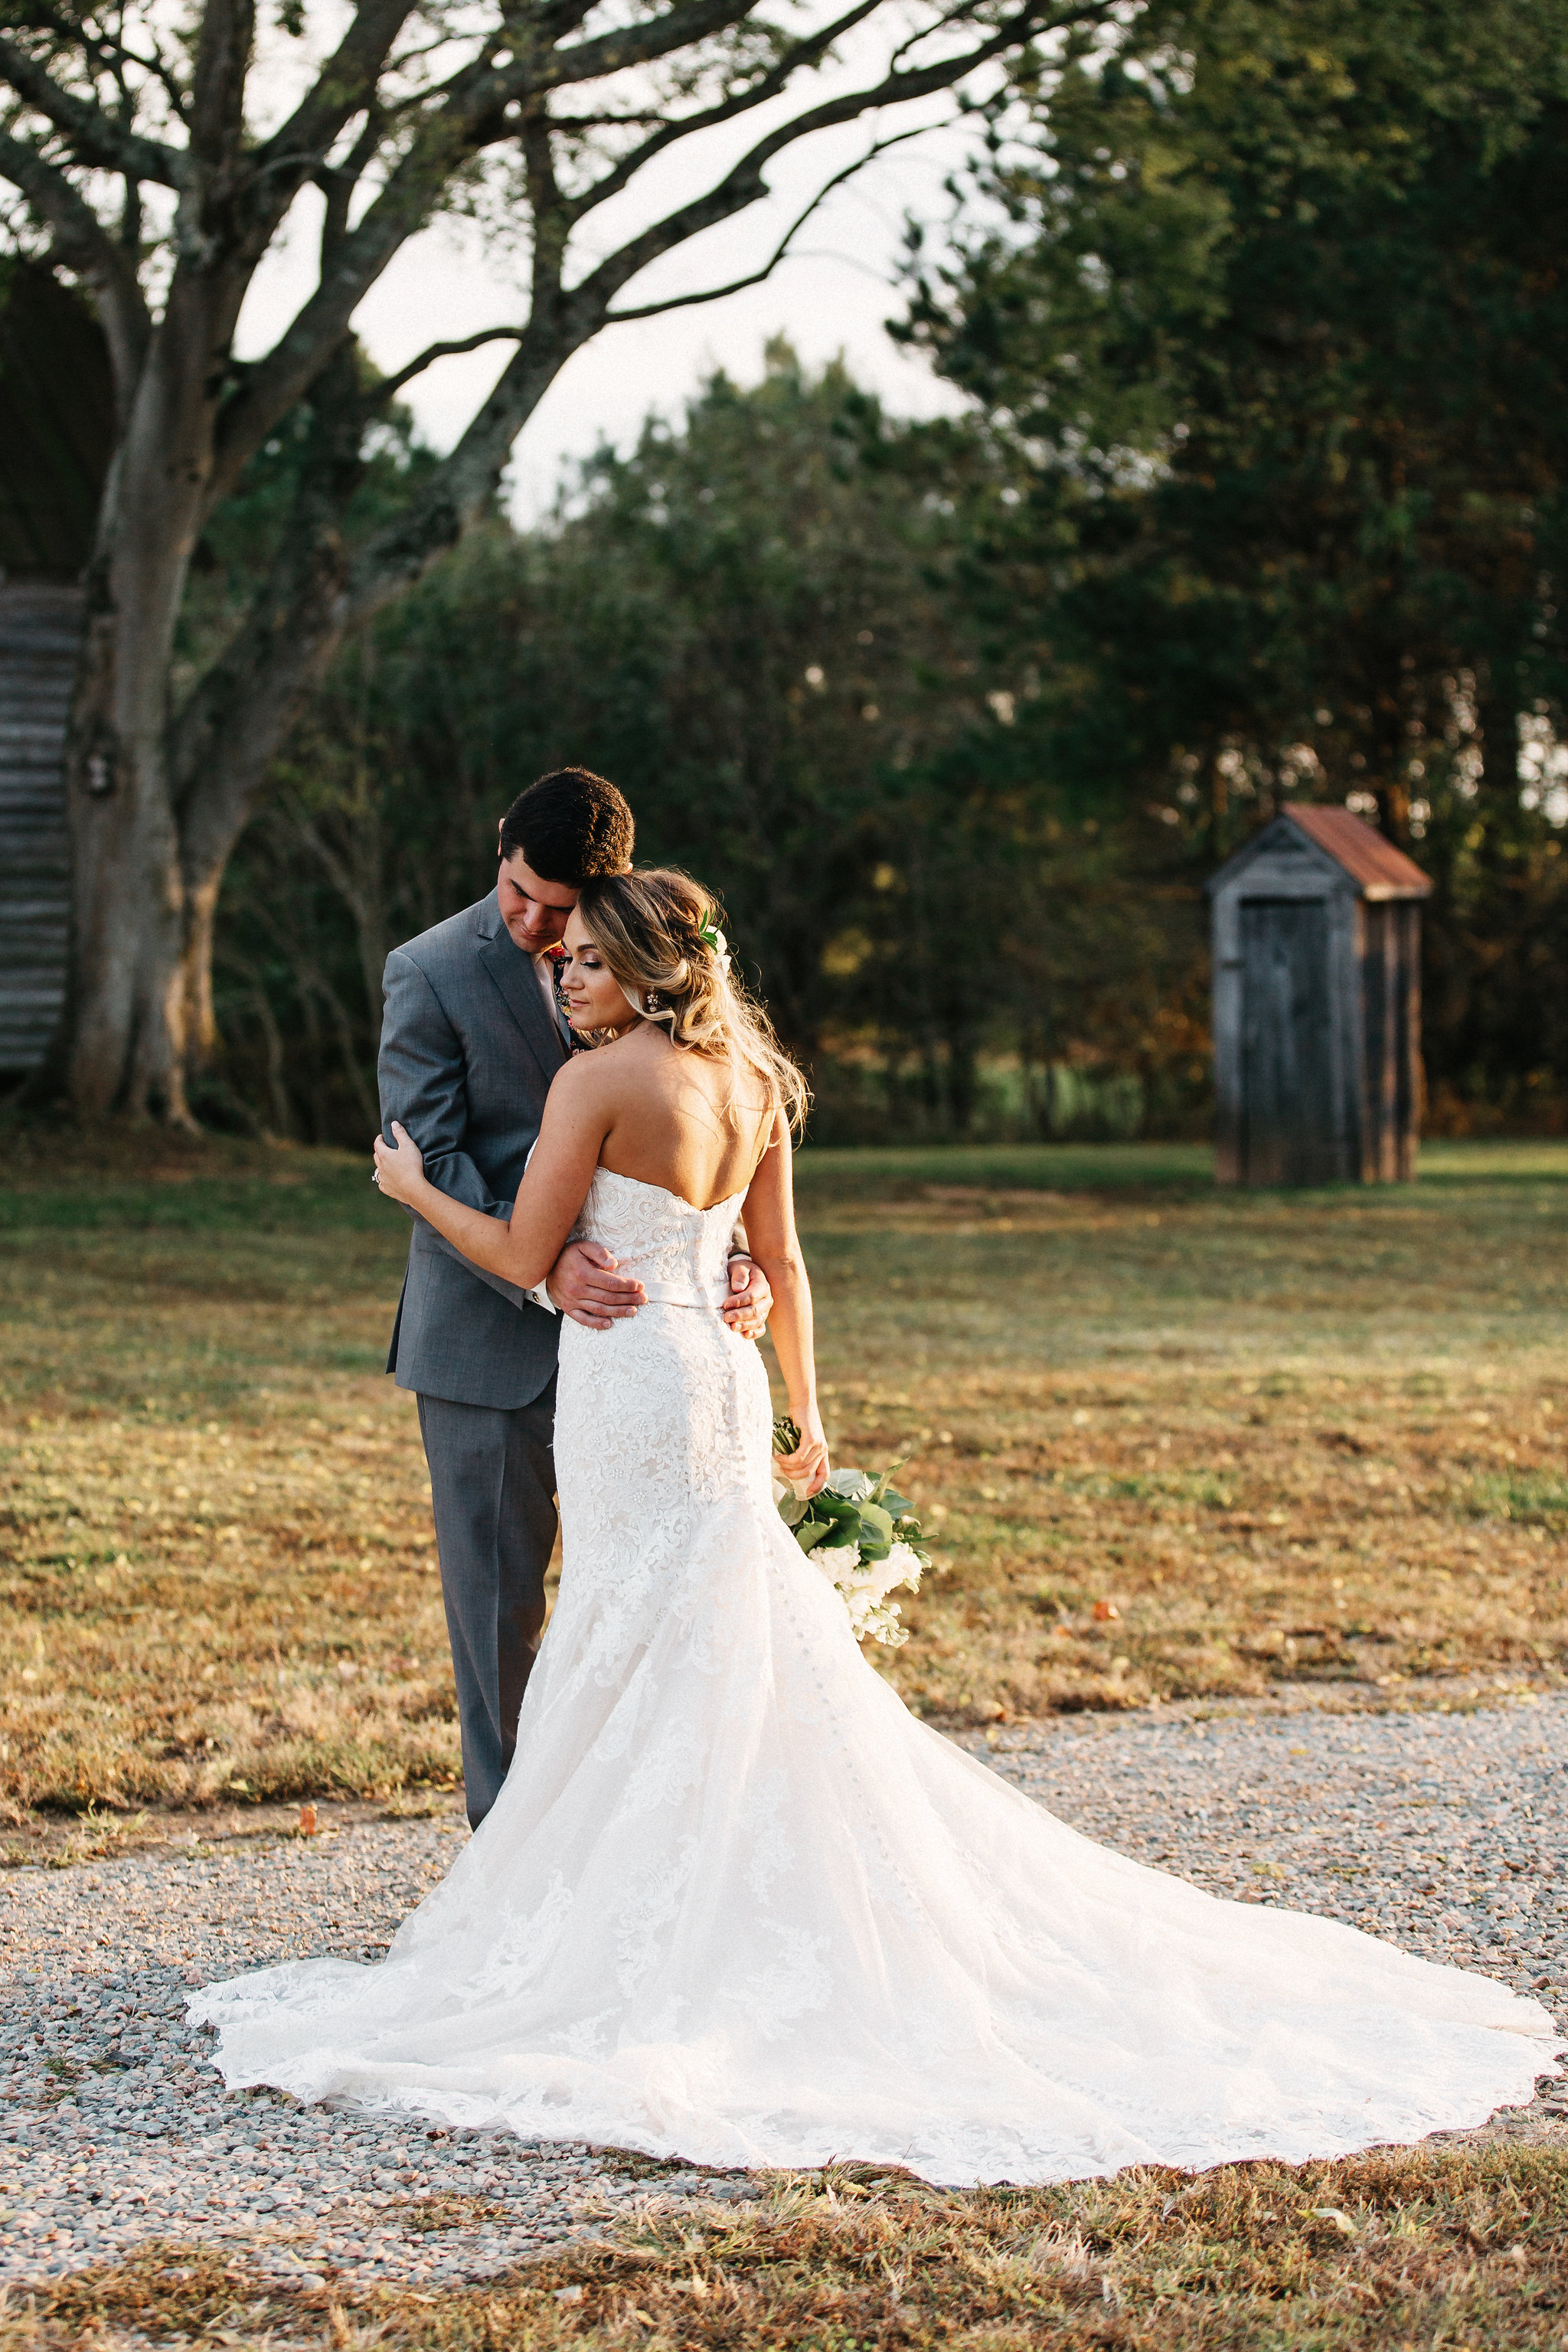 Ashley&NathanMarried2017-11-10at19.26.49PM74.jpg